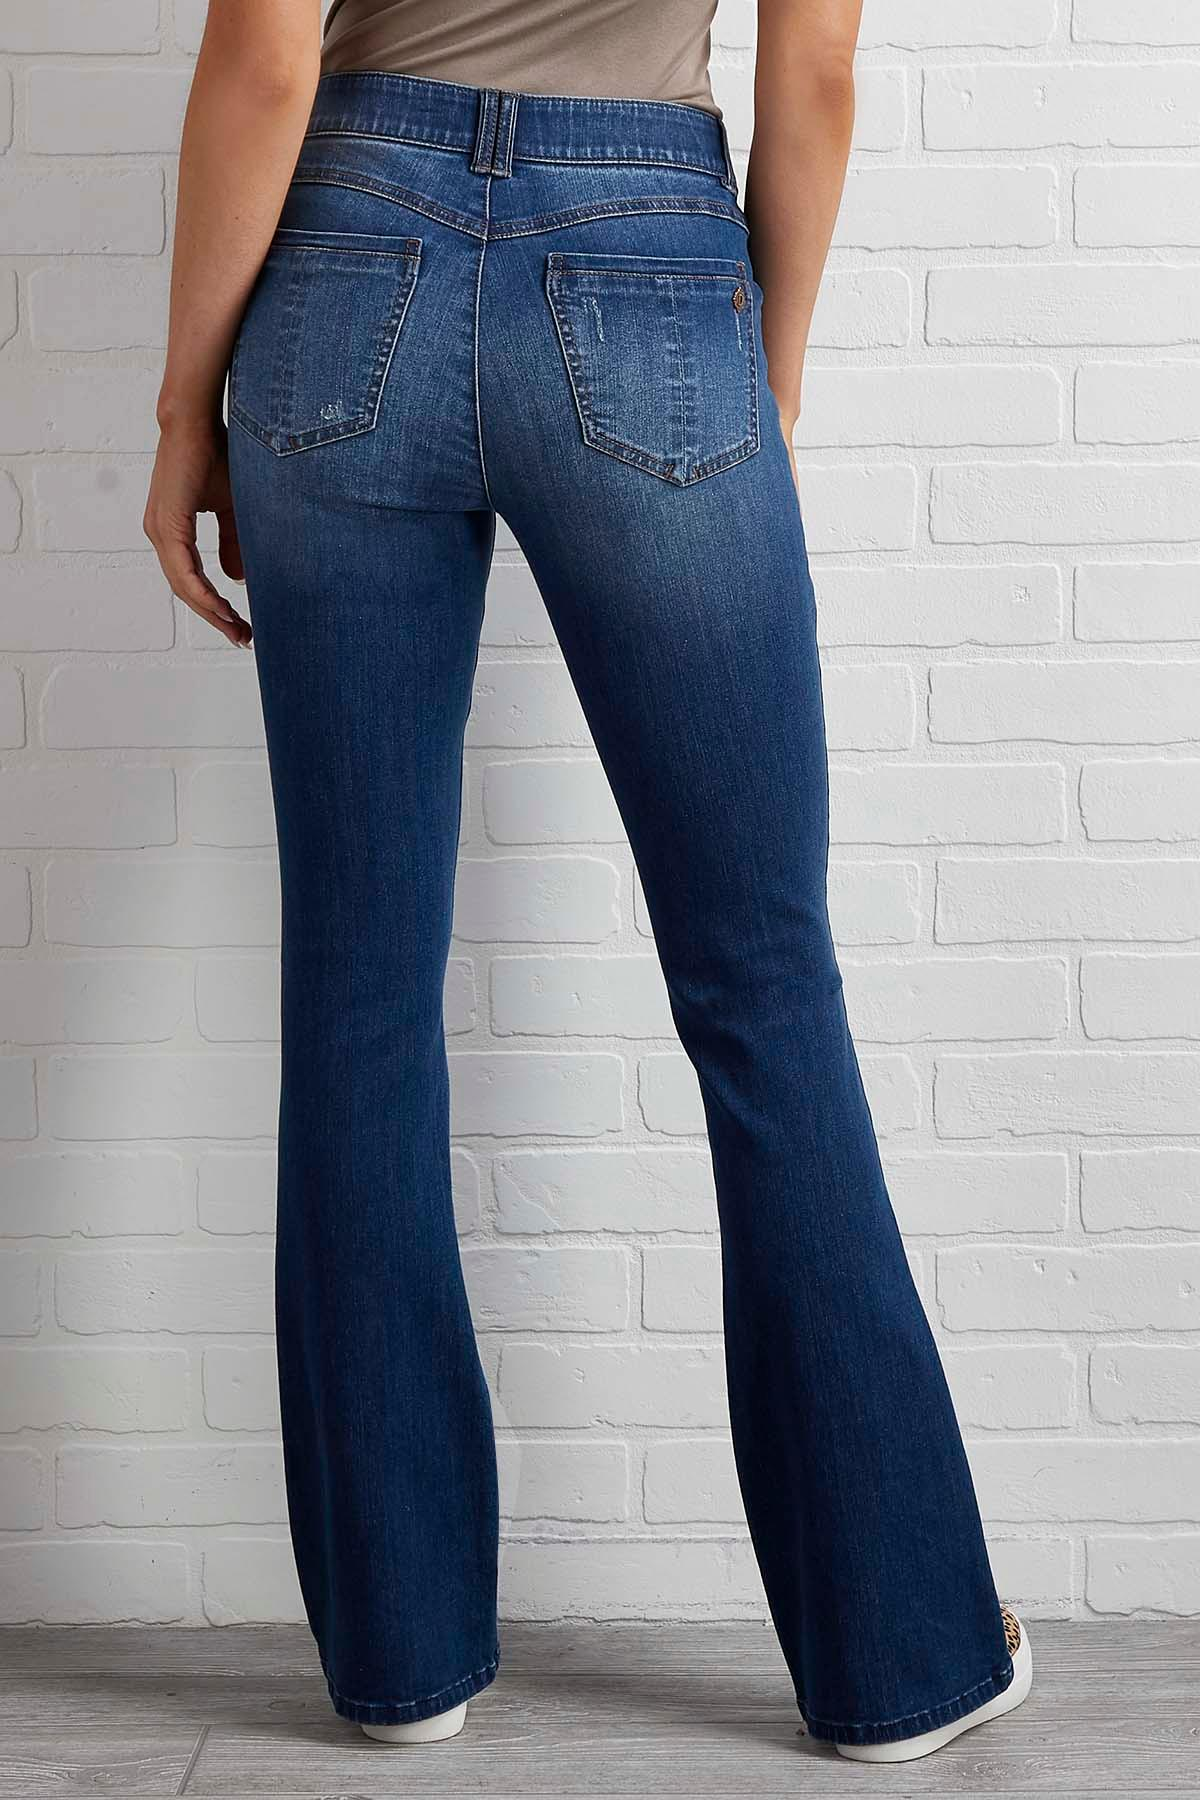 Much To Flare About Jeans